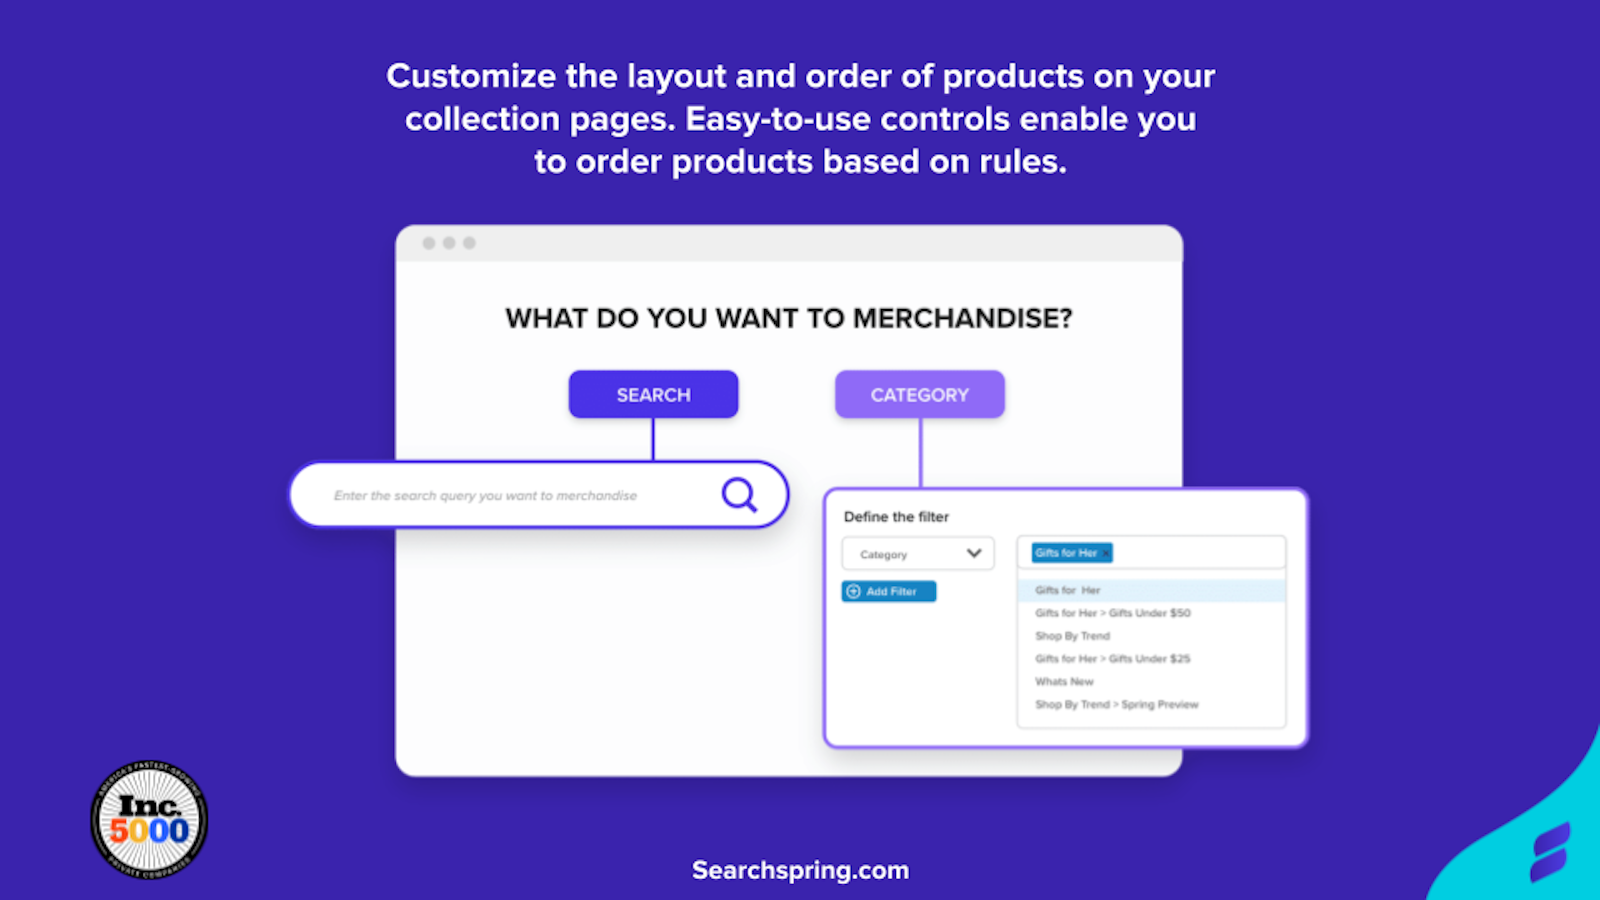 Customize the layout & order of products on search & collections